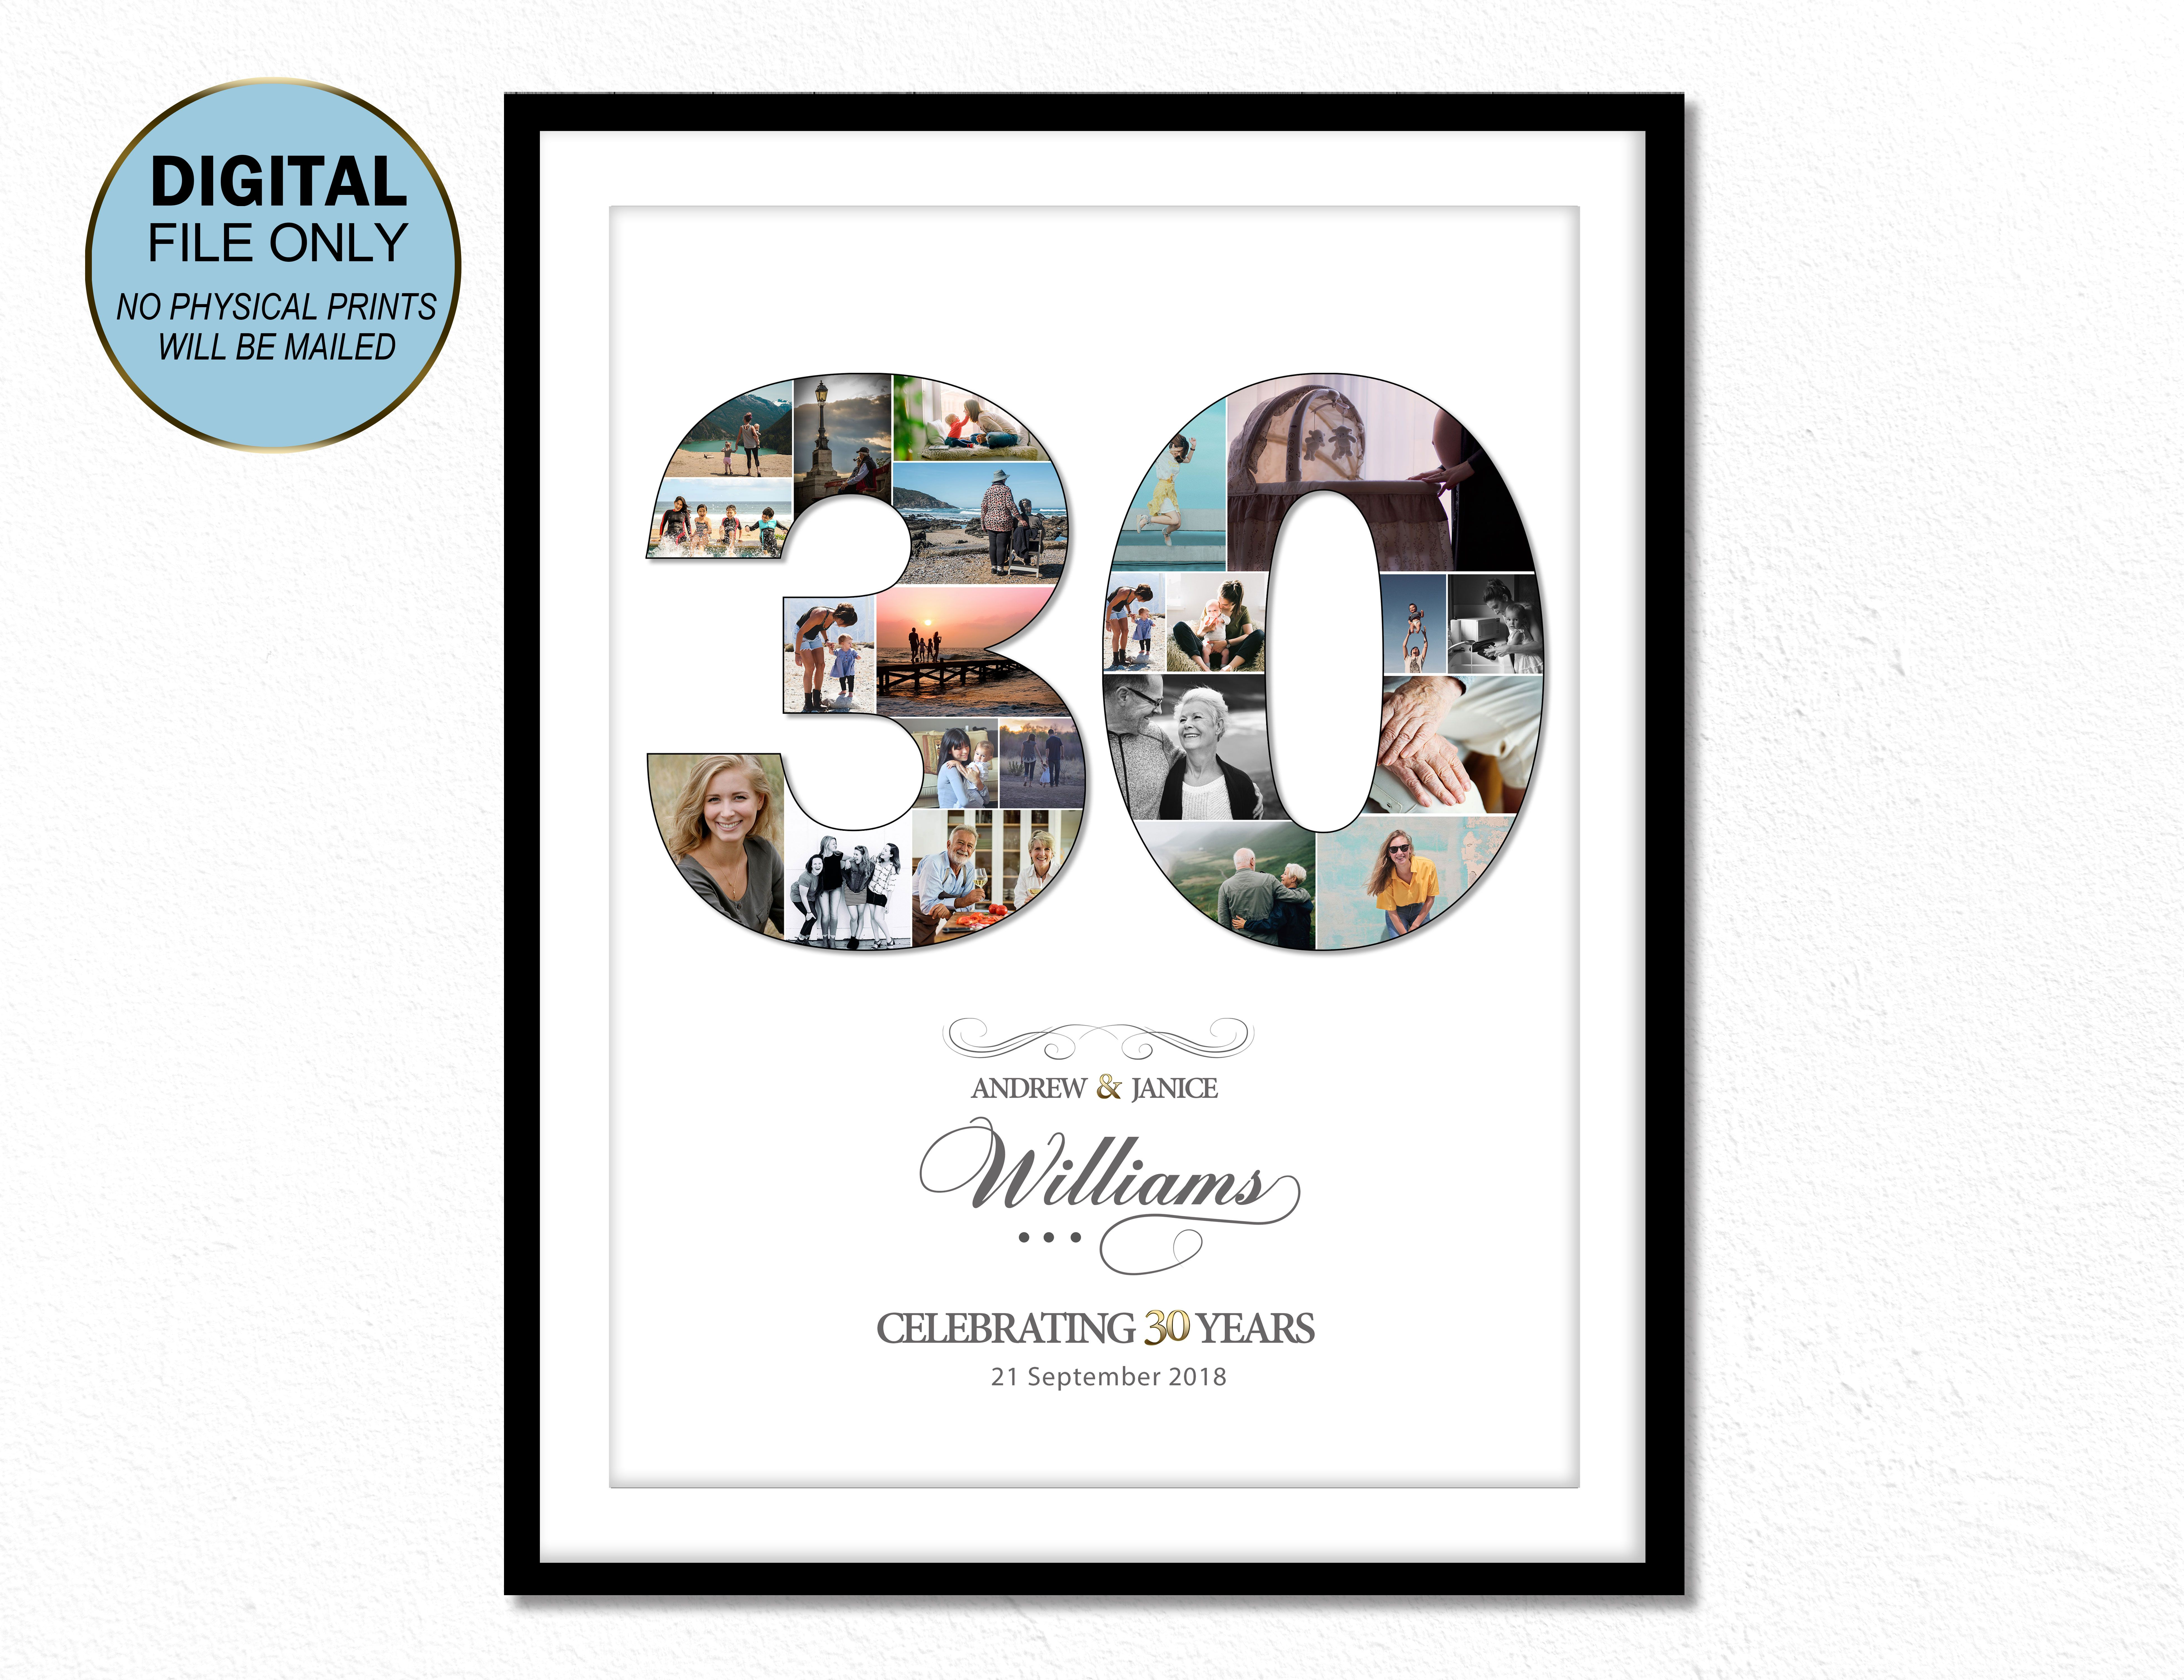 30 Wedding Anniversary Gift Married 30 Years 30th Anniversary Gift For Wife 30th Anniversary Gift For Husband 30 Anniversary Parents 30th Wedding Anniversary Gift Anniversary Gifts For Husband 30th Anniversary Gifts For Parents